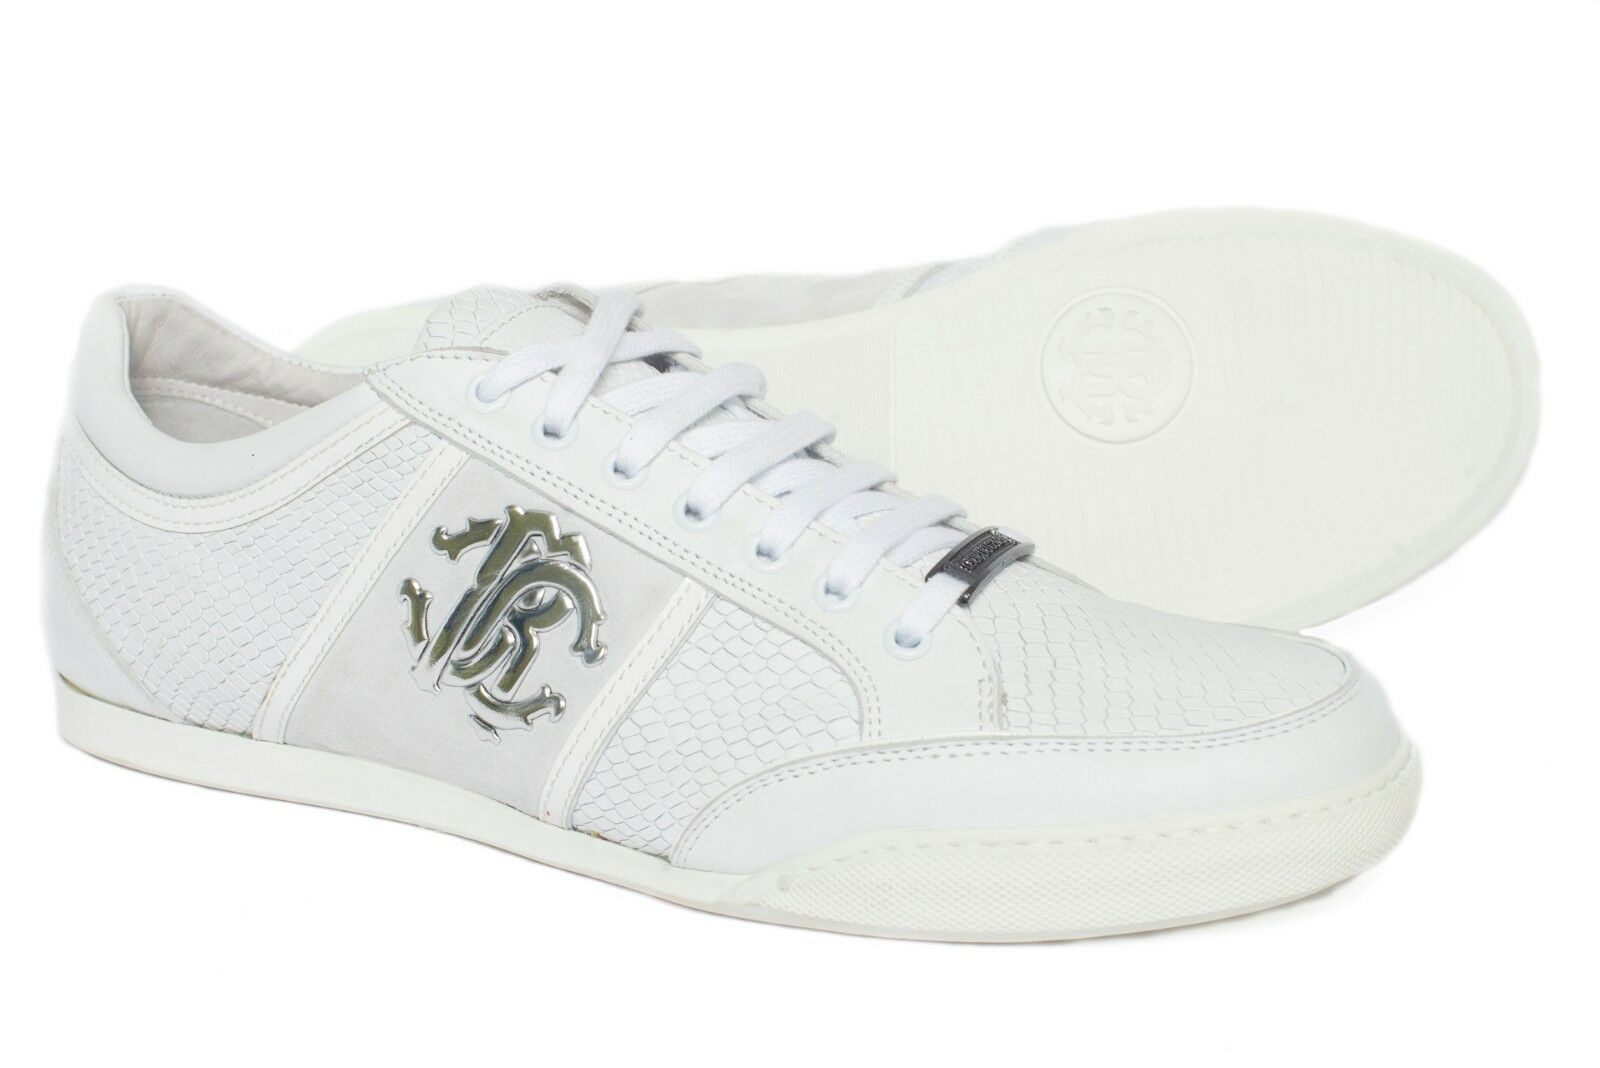 Roberto Cavalli 02894  Italian mens white low top lace up sneakers